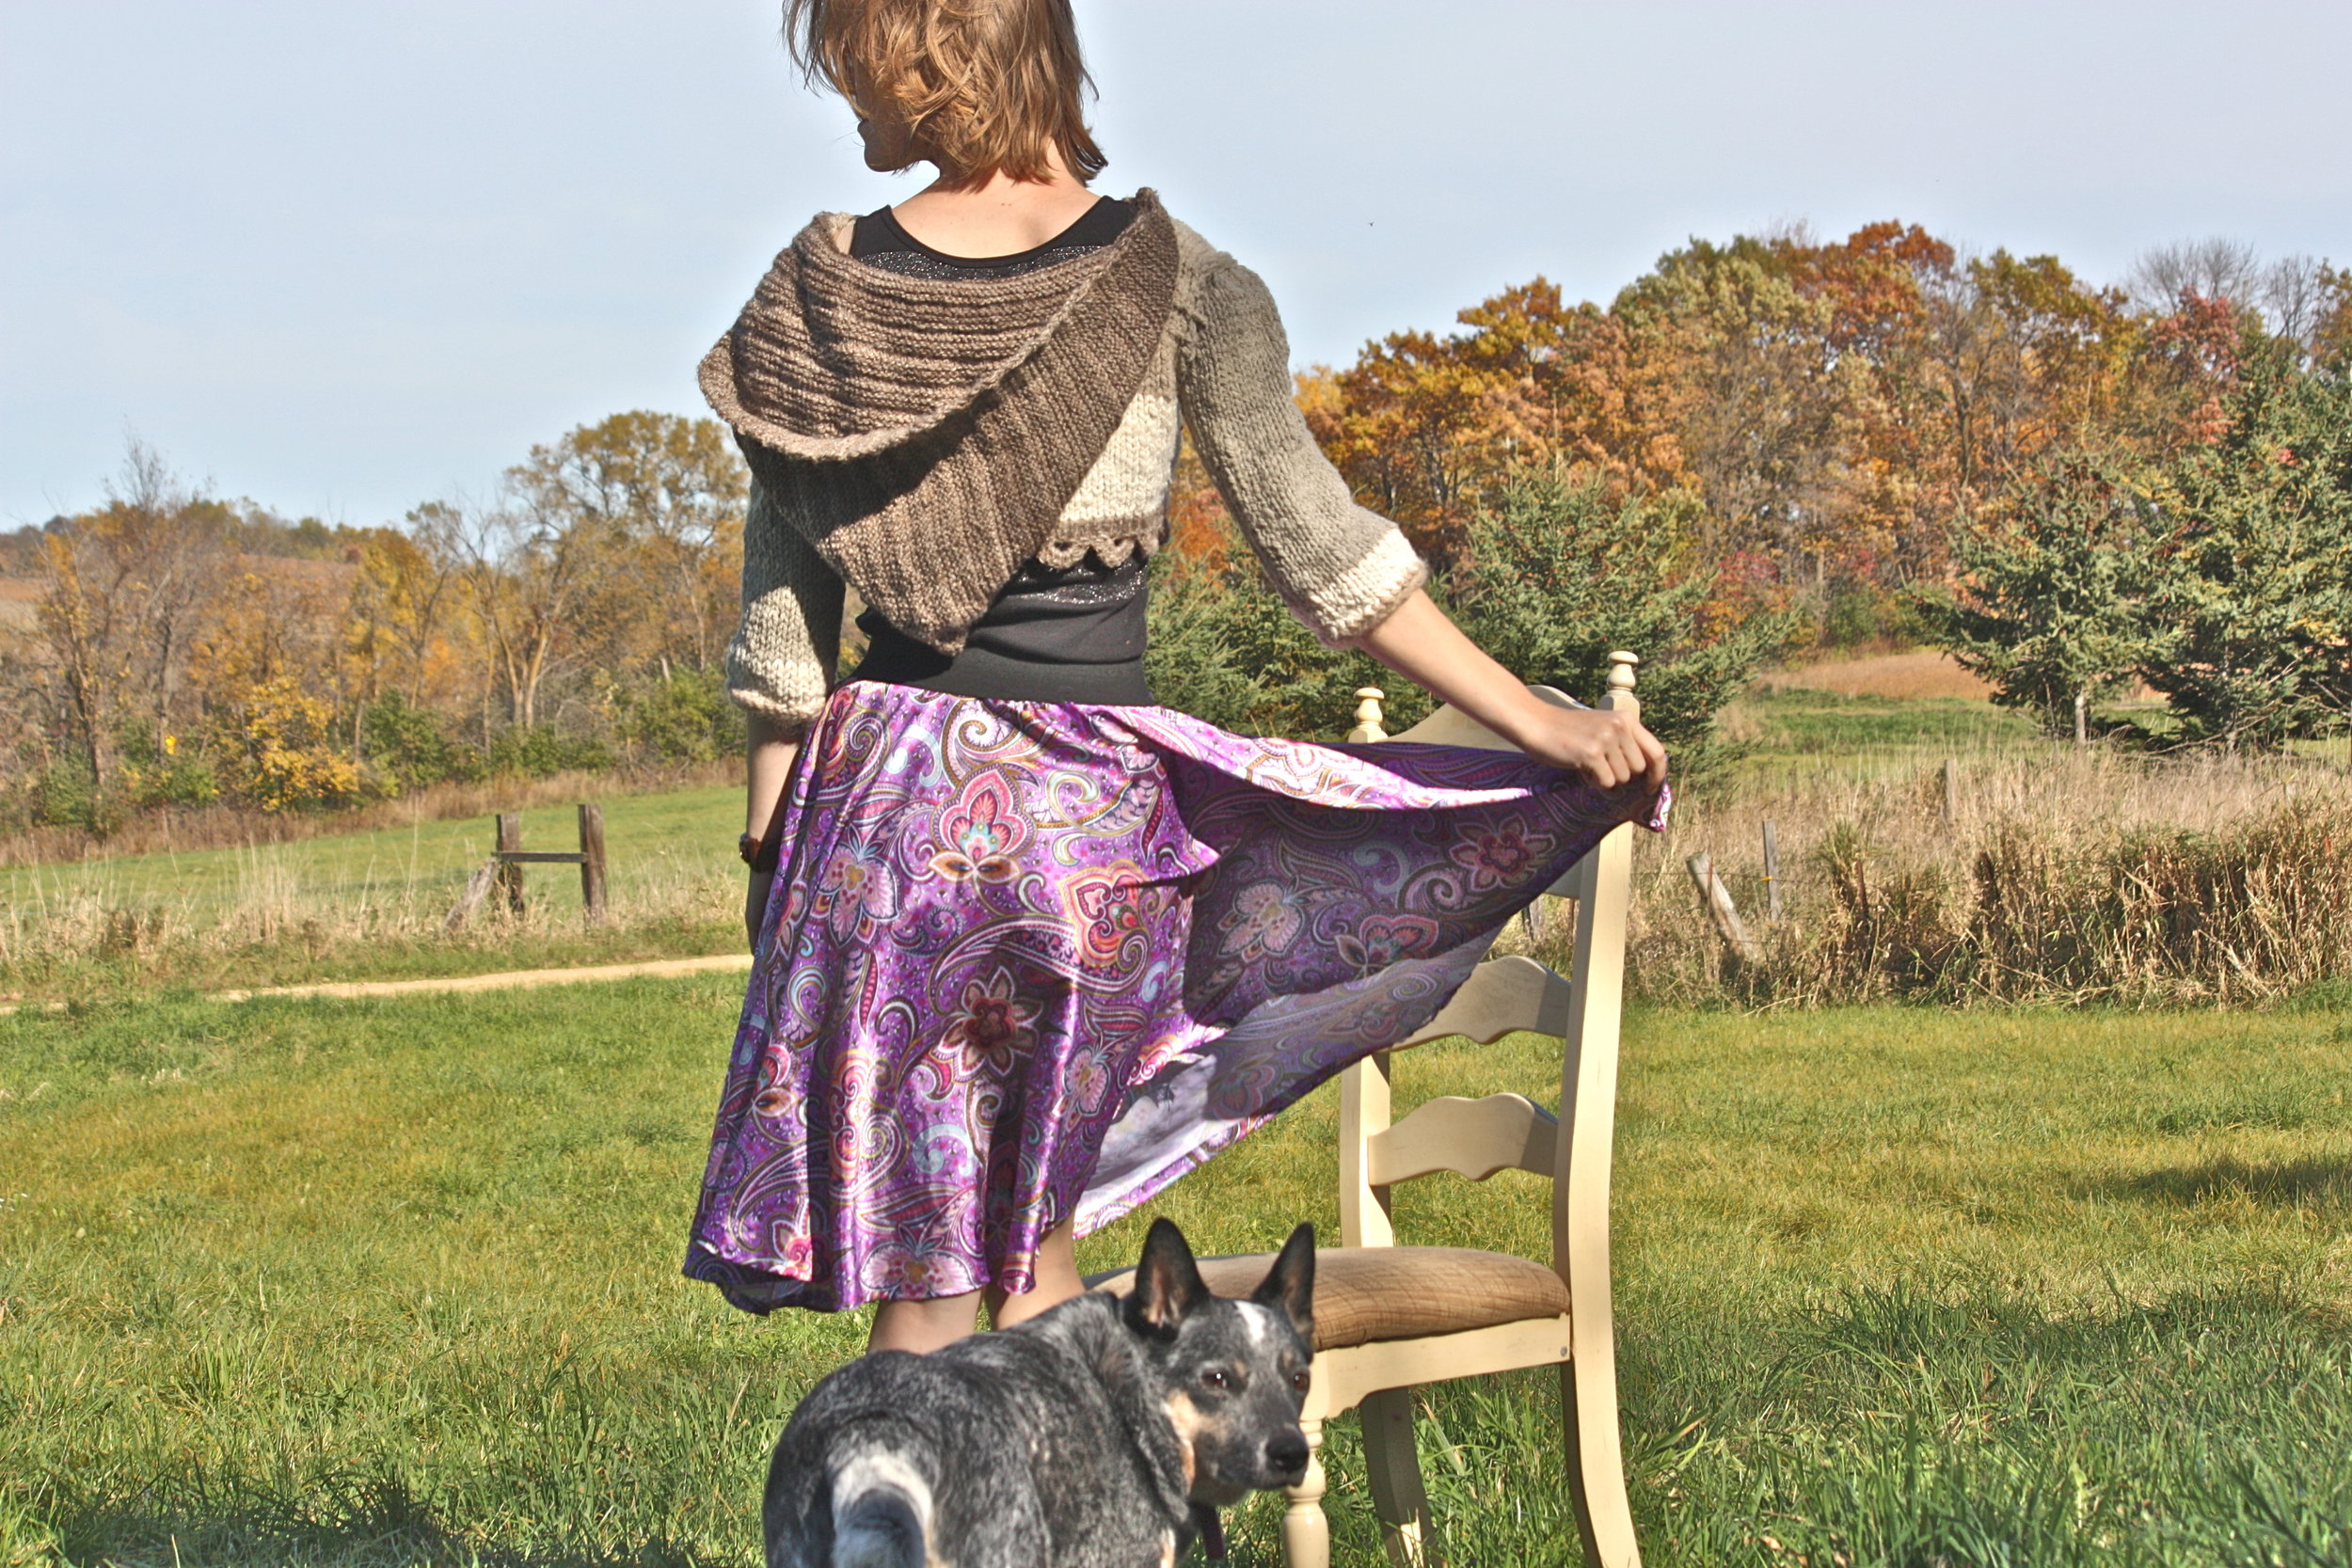 Wearing: Circle skirt (drafted with help from  Made Everday with Dana ) Cropped sweater, designed by me knit with handspun yarn, natural dyes